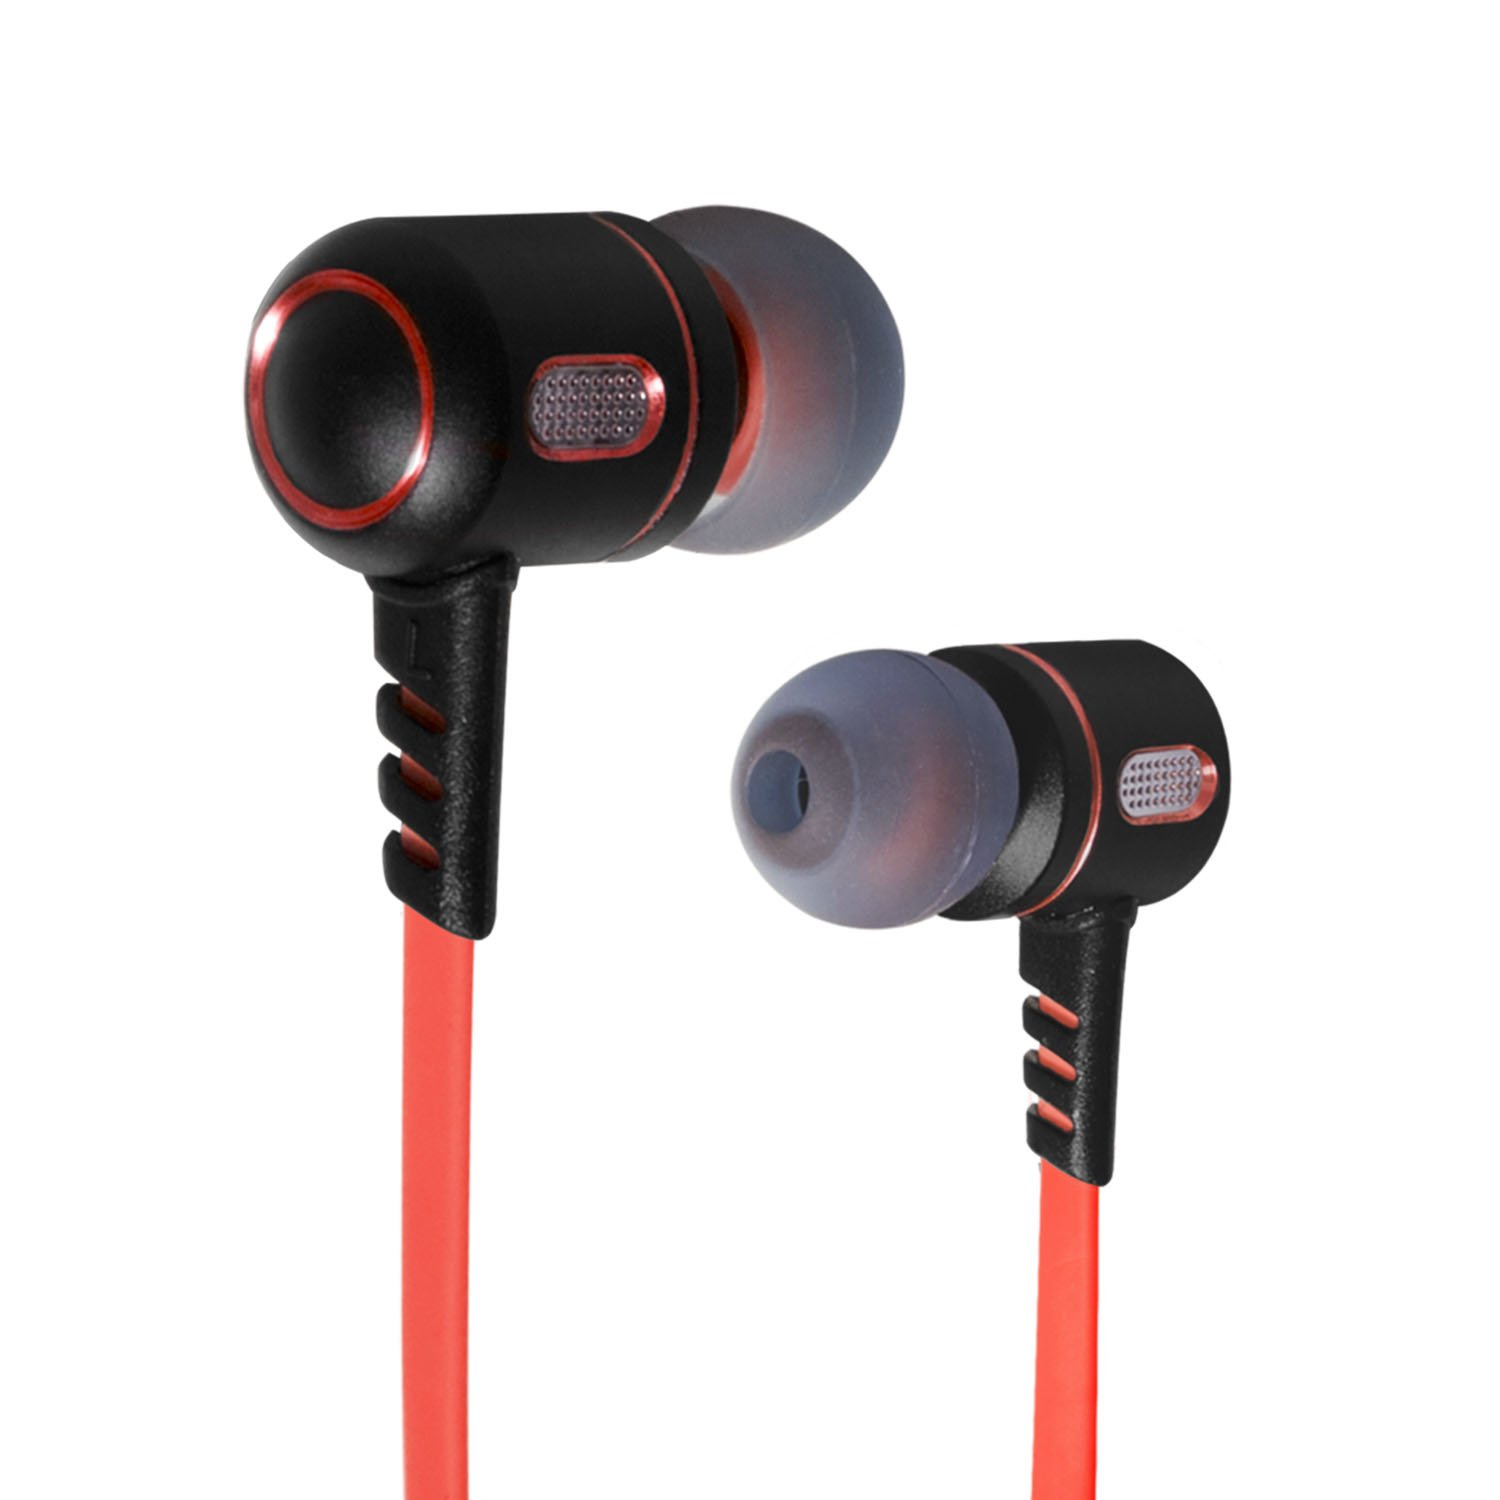 SPIRIT OF GAMER Ecouteurs intra auriculaires Gaming LEGION Rouge - Multiplateforme PC / PS3 / PS4 / XBOX 360 / XBOX ONE / SWITCH